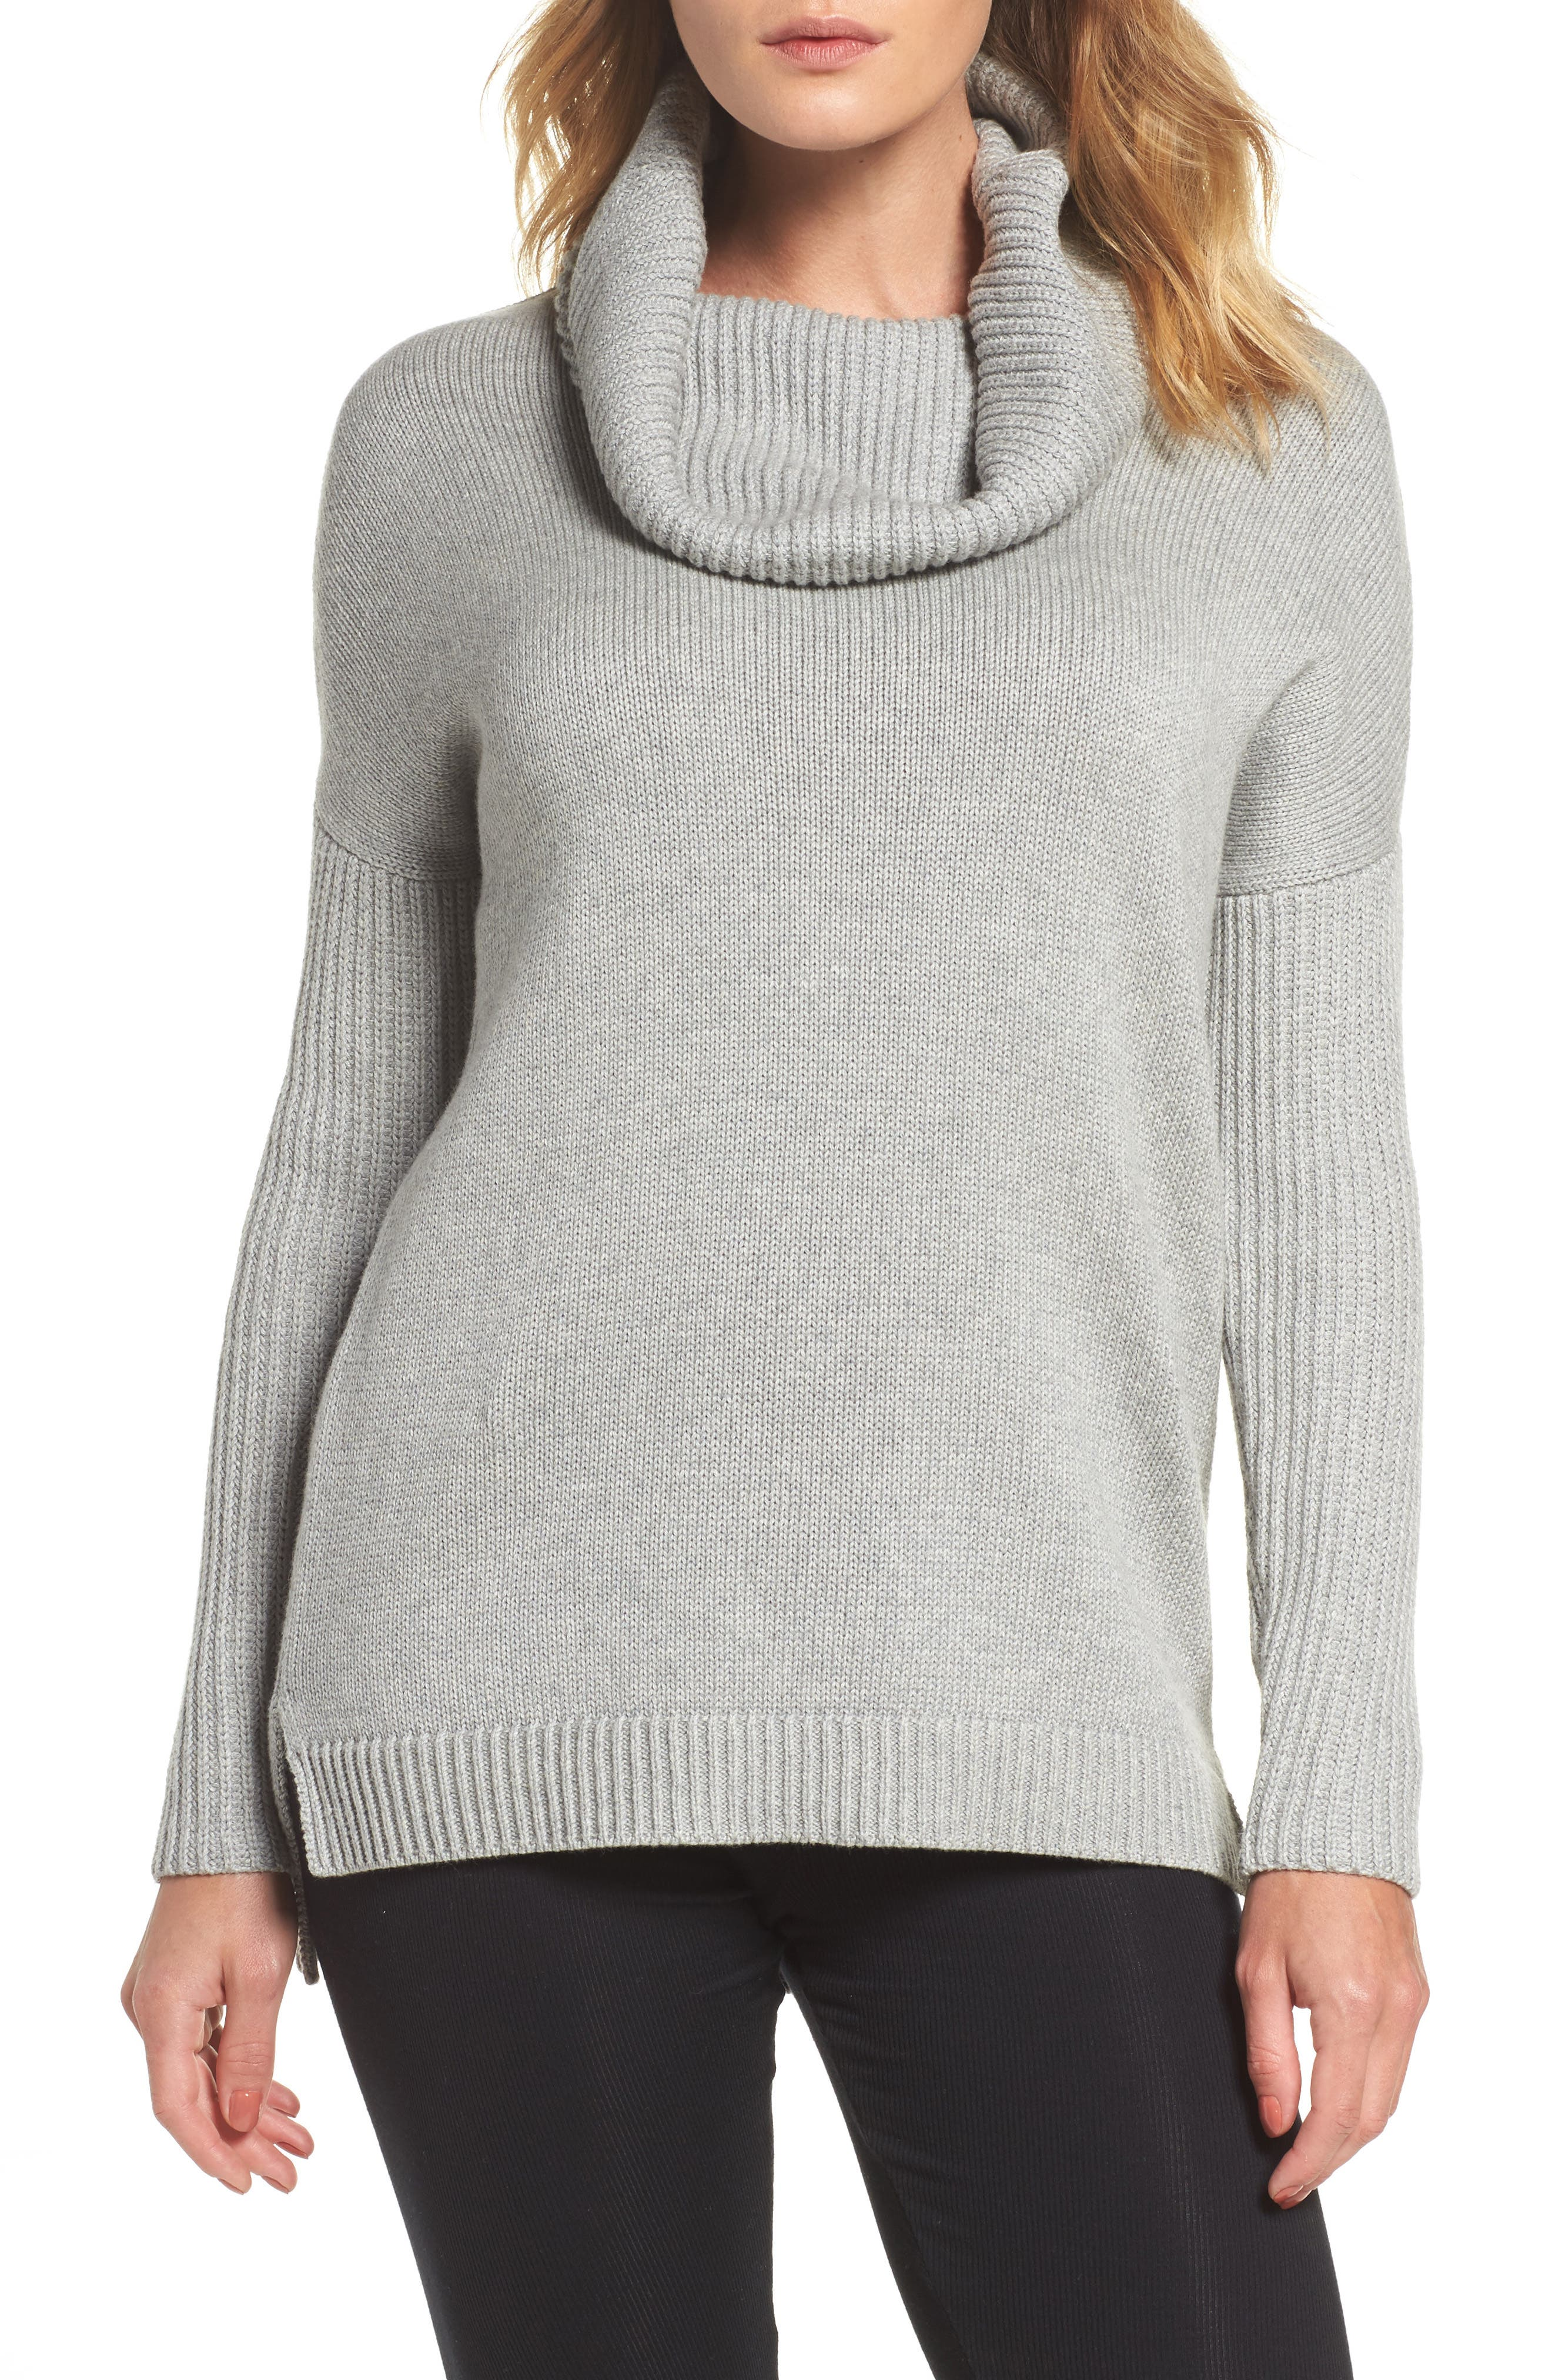 Cowl Neck Tunic Sweater,                         Main,                         color, Grey Heather